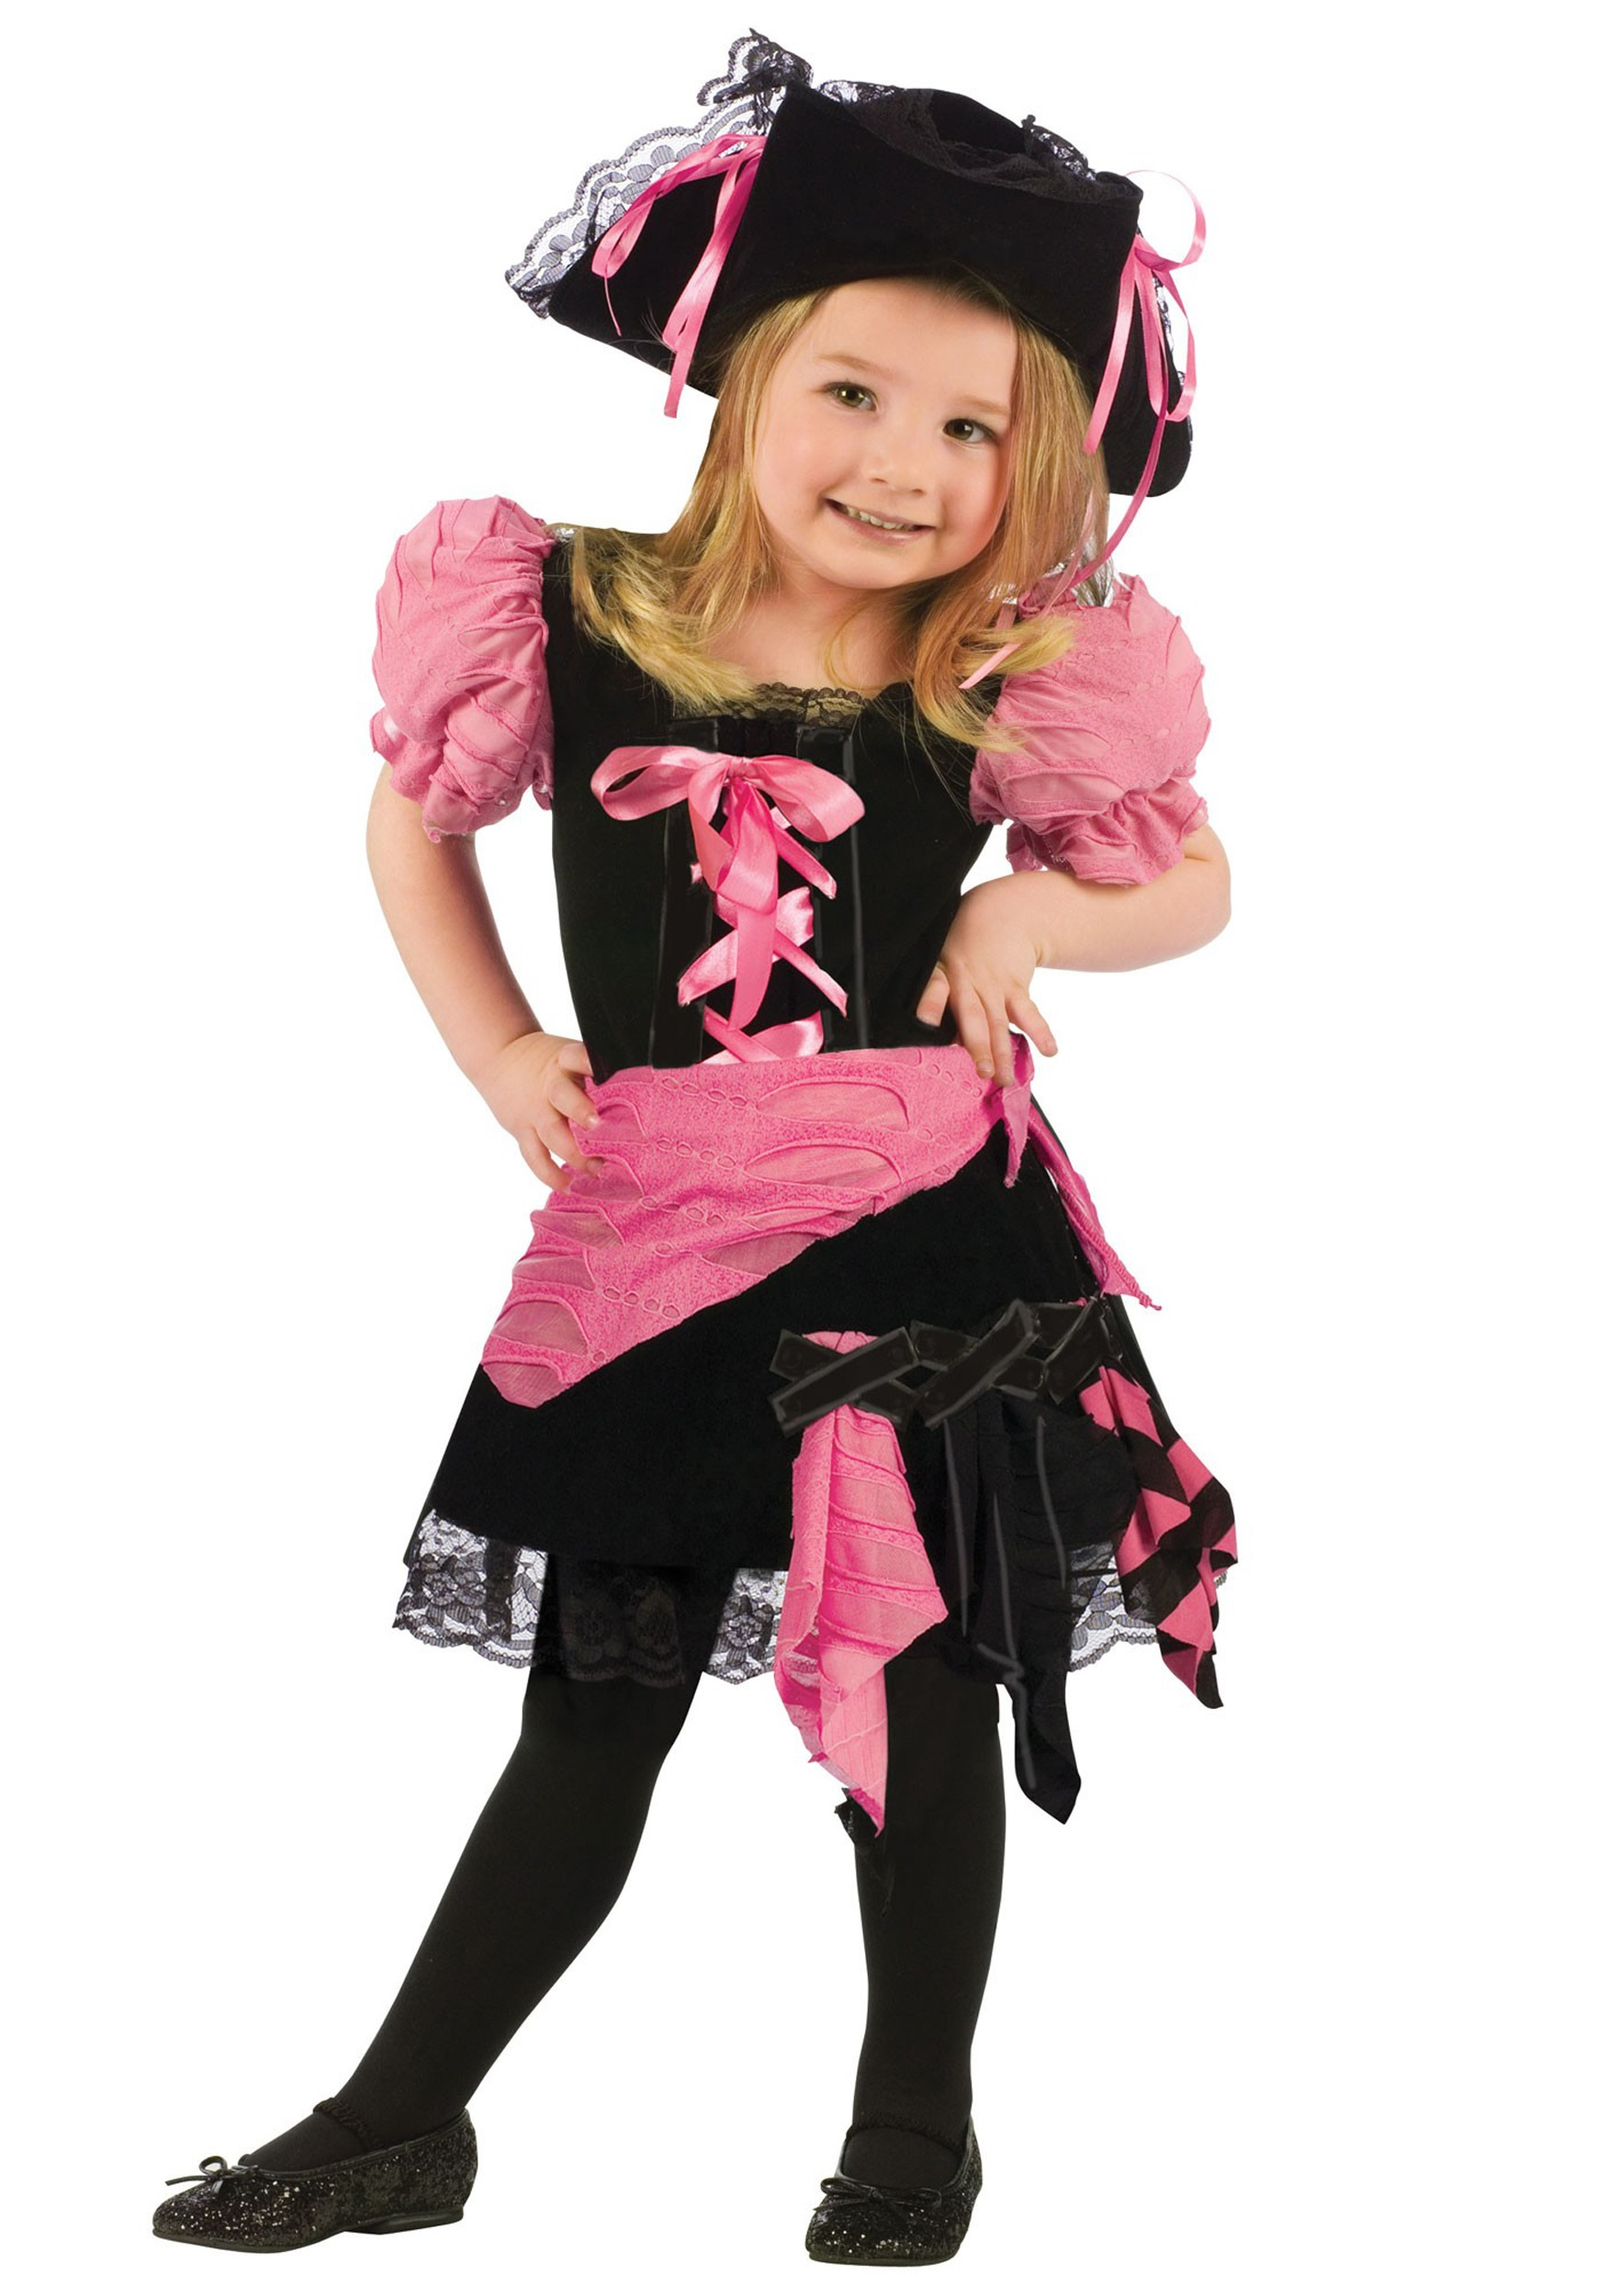 Baby girl pirate costume - photo#10  sc 1 st  Animalia Life & Baby Girl Pirate Costume